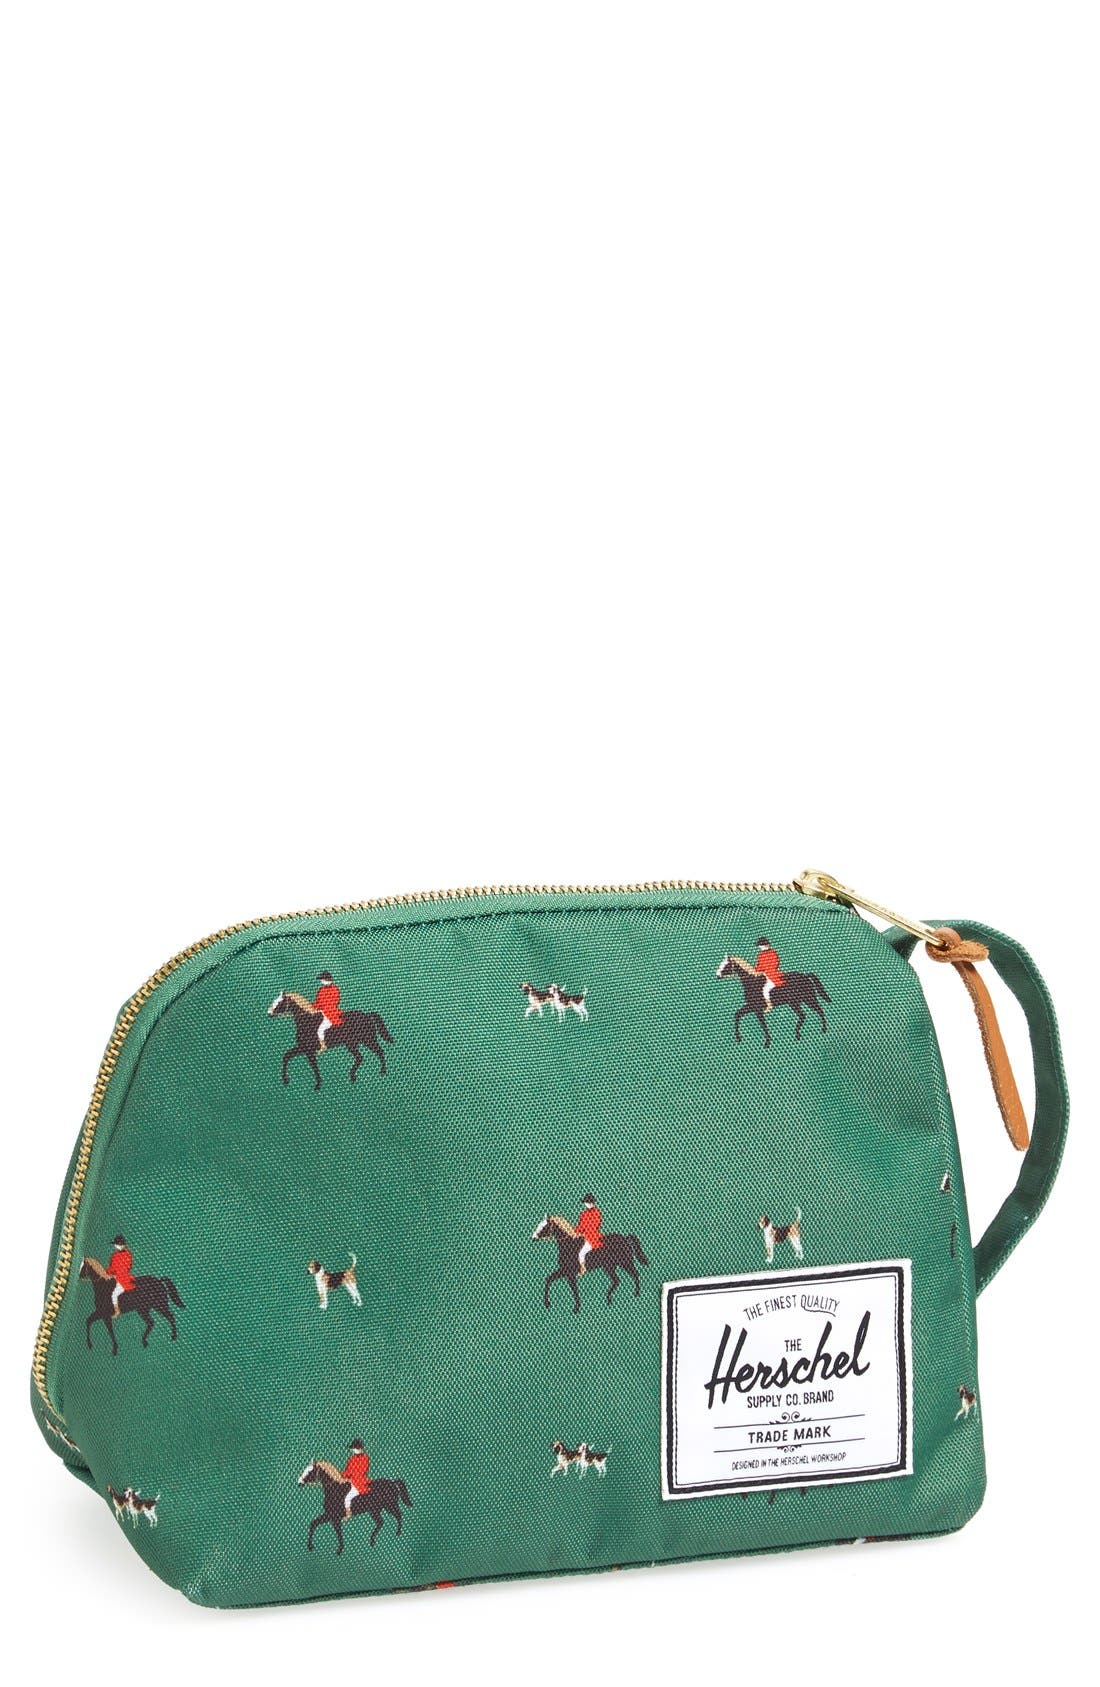 Alternate Image 1 Selected - Herschel Supply Co. 'Royal' Toiletry Bag